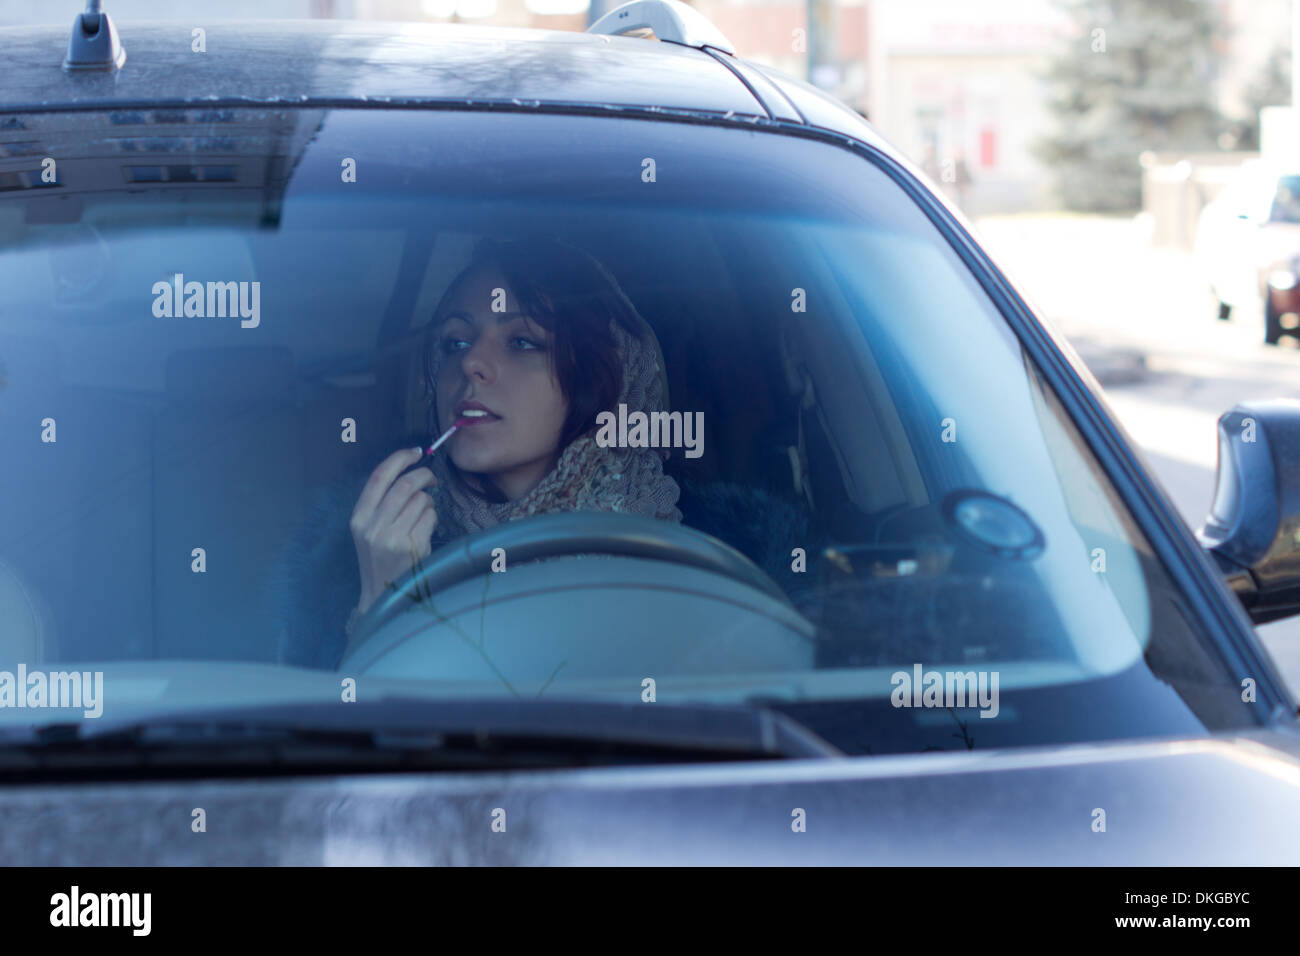 Dangerous irresponsible female driver applying her makeup using the rear-view mirror as she drives to work endangering herself and other motorists by her inattention. - Stock Image